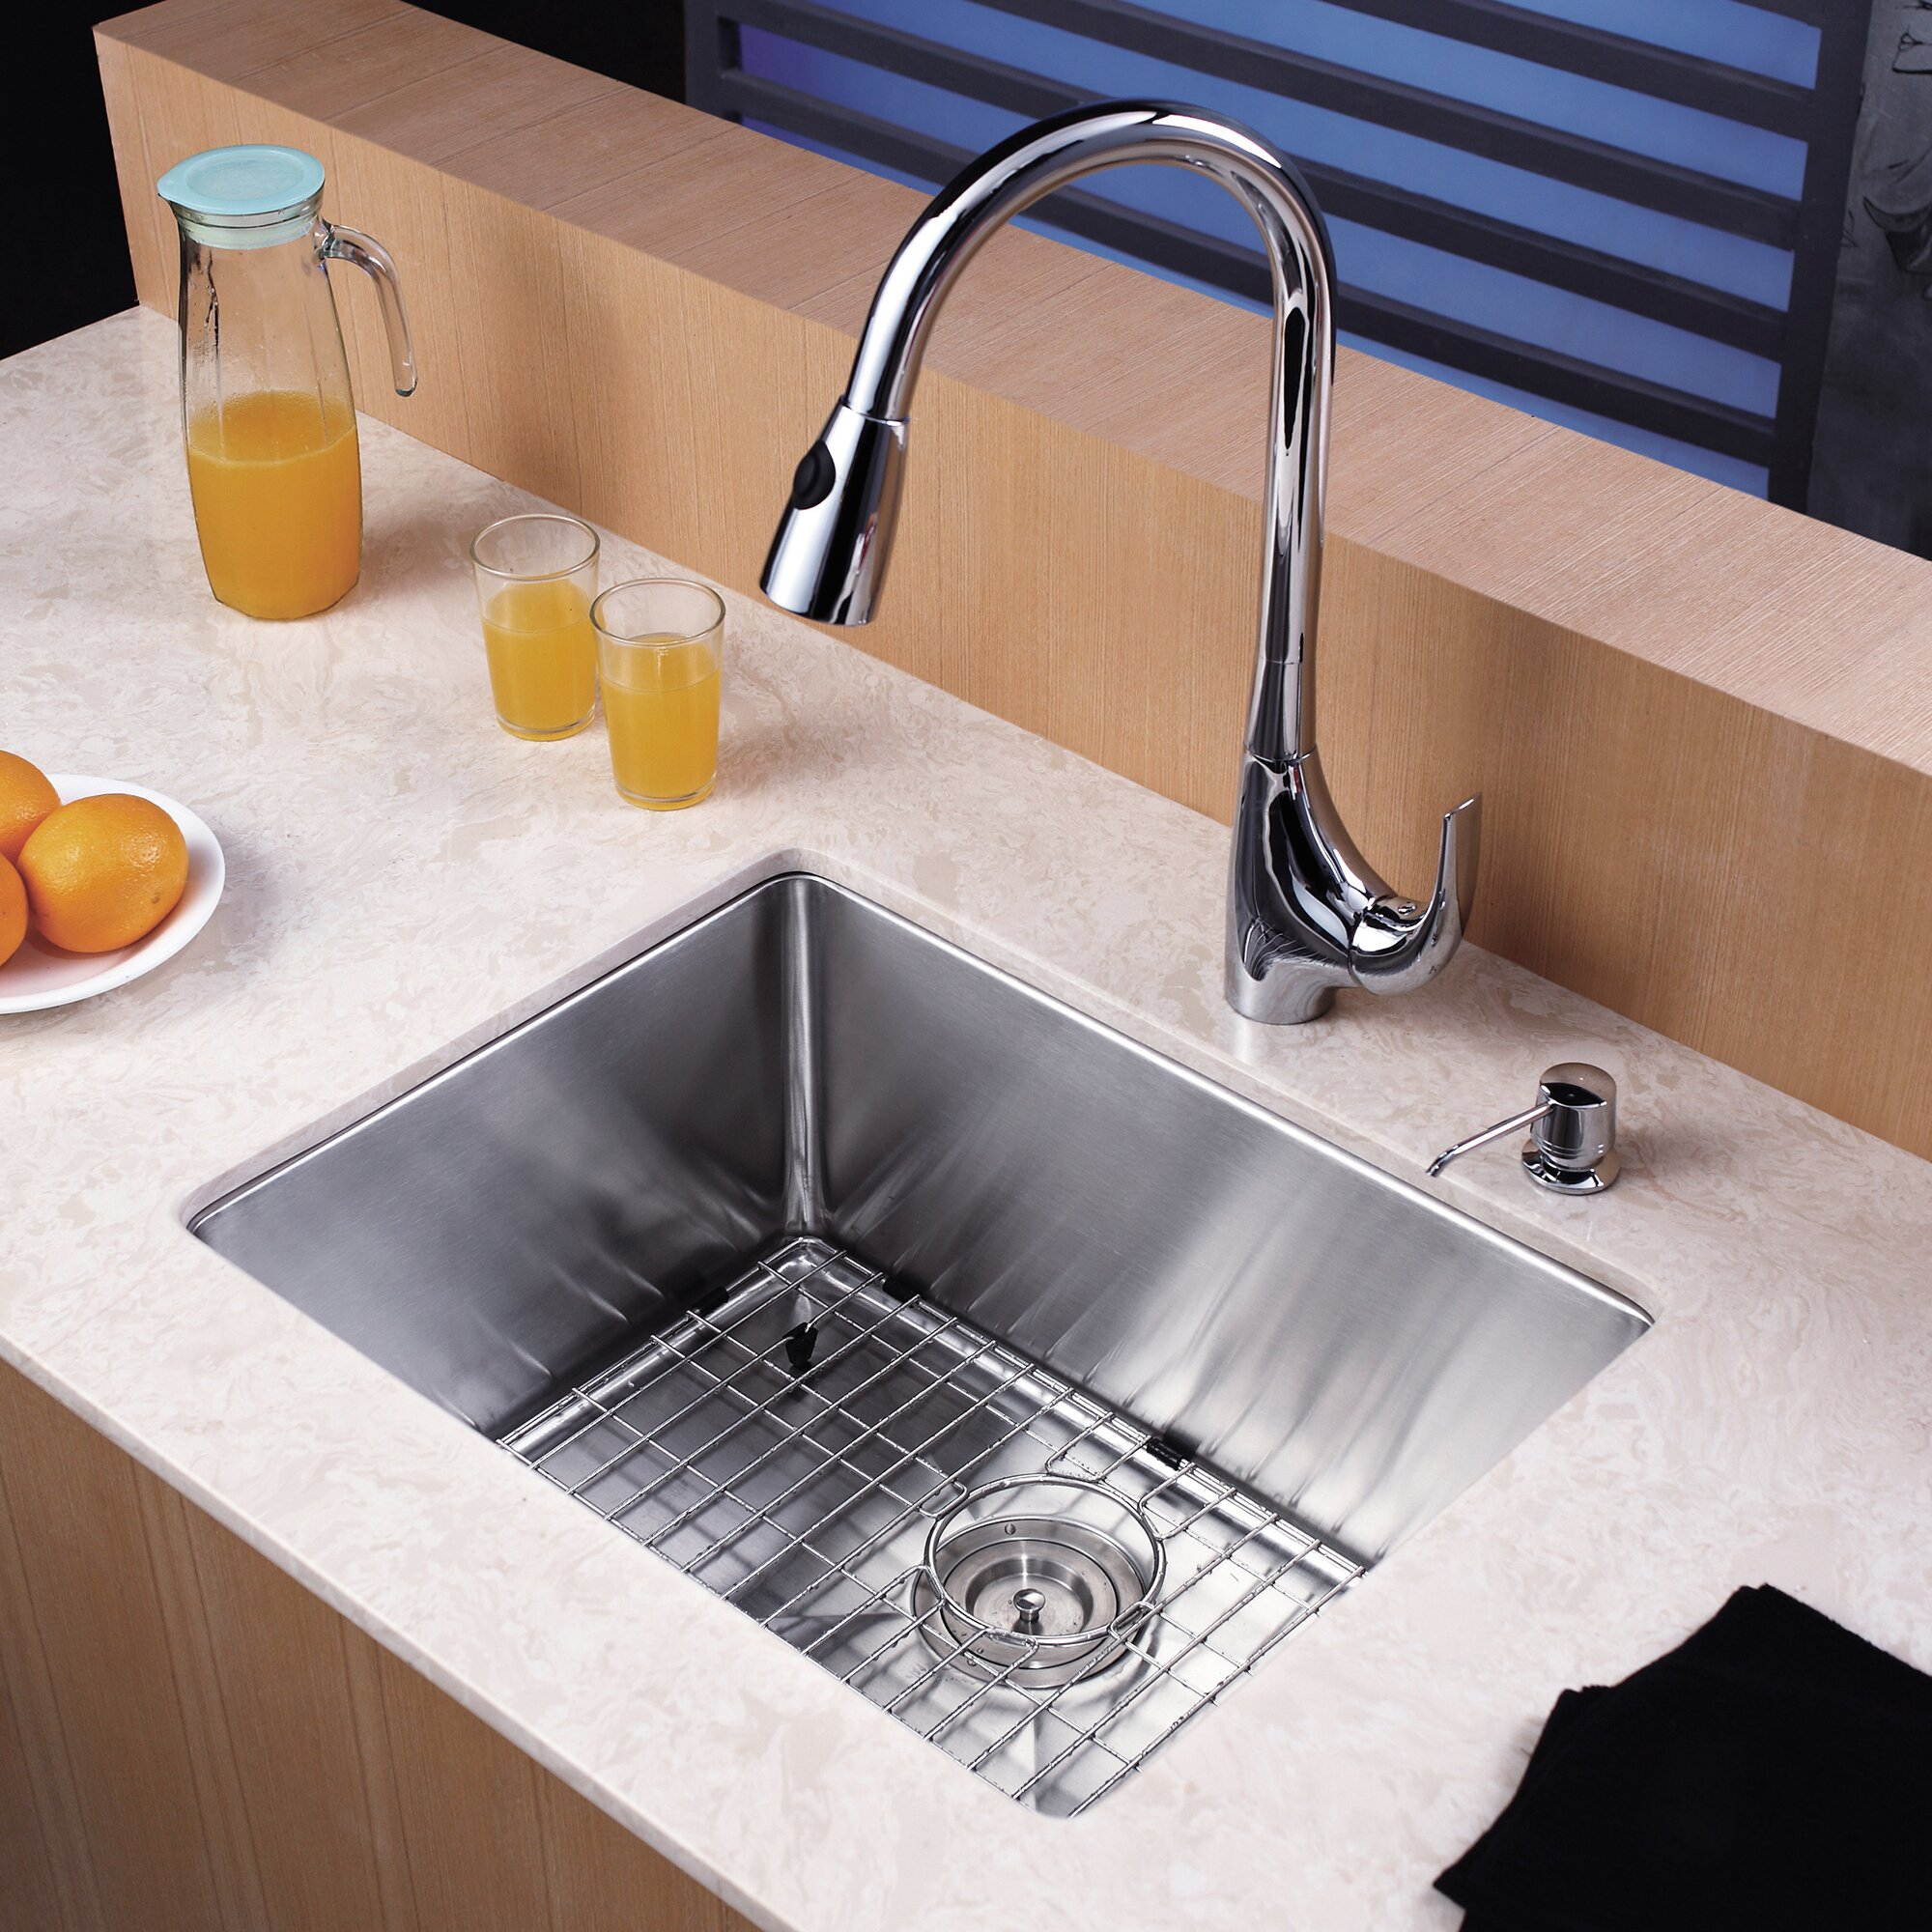 kraus kitchen sinks kraus 23 quot x 18 quot undermount kitchen sink amp reviews wayfair ca 3612